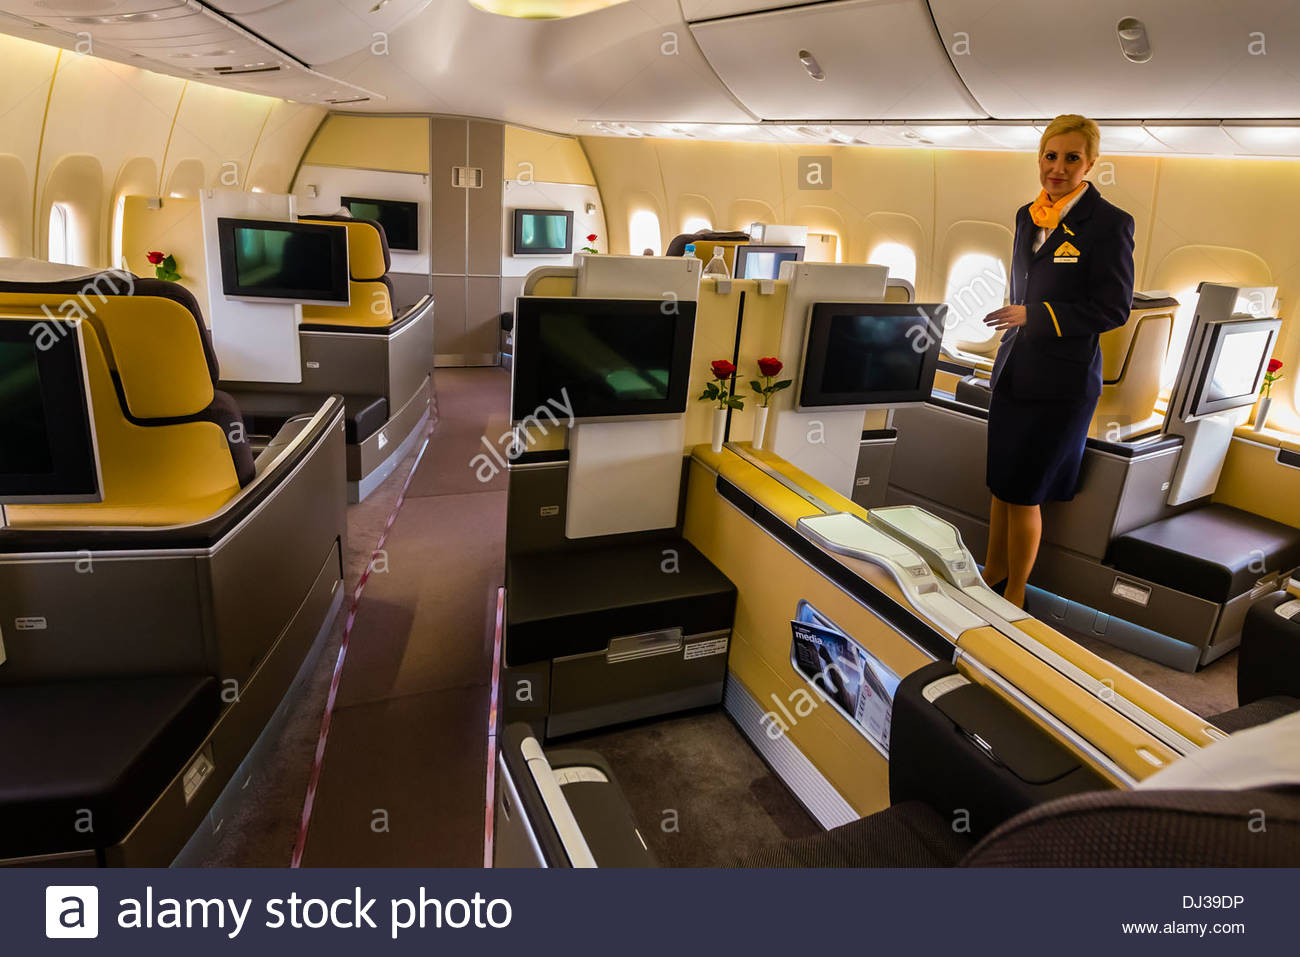 First class cabin of a Lufthansa 747 jet at Frankfurt Airport, Germany. - Stock Image